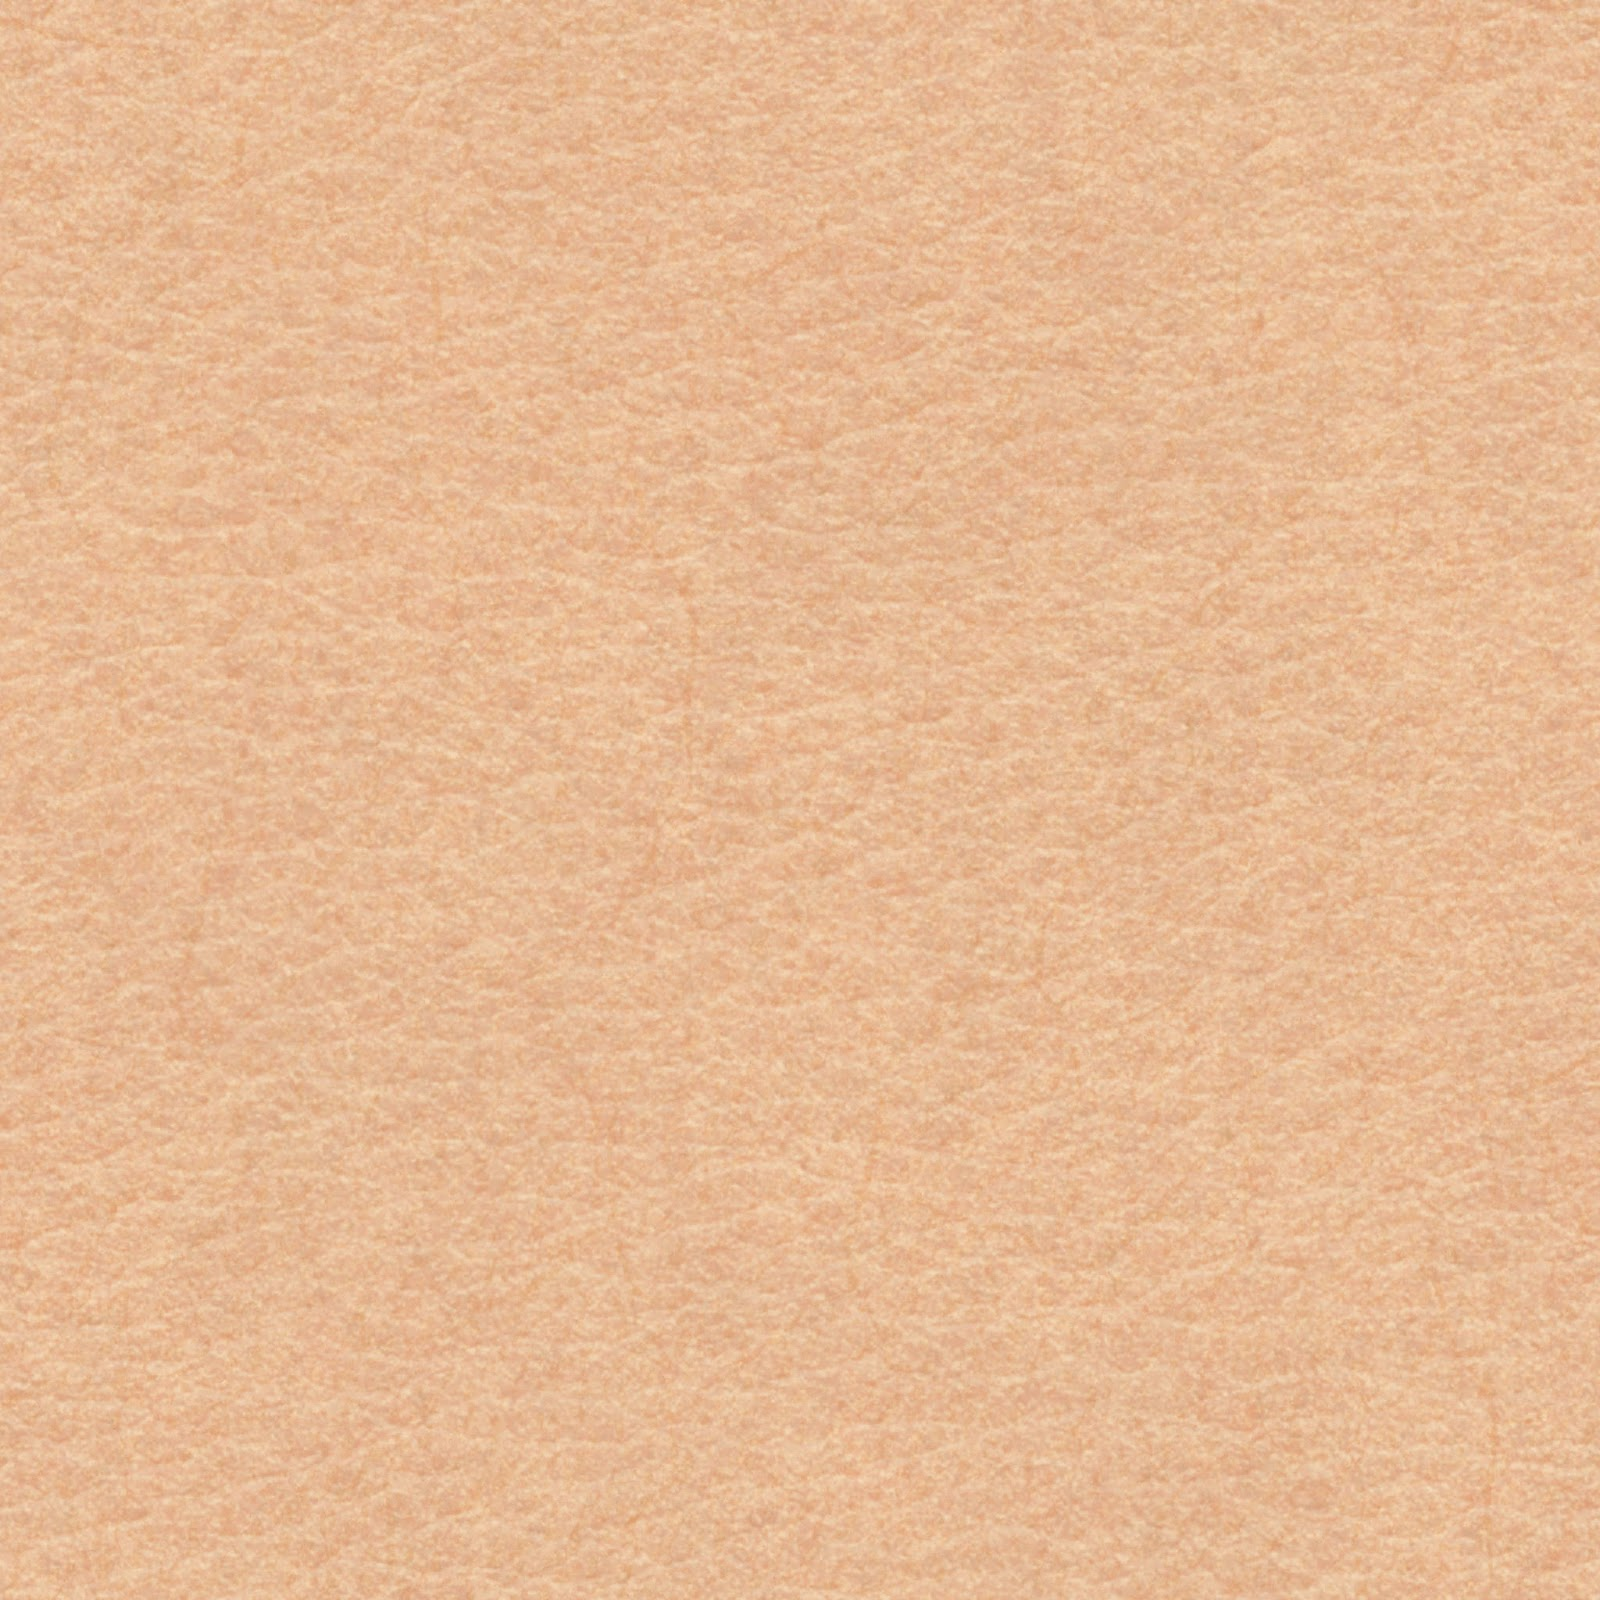 500 High Resolution Textures: seamless-pixels.blogspot.kr/2012/10/tileable-human-skin-texture-5.html